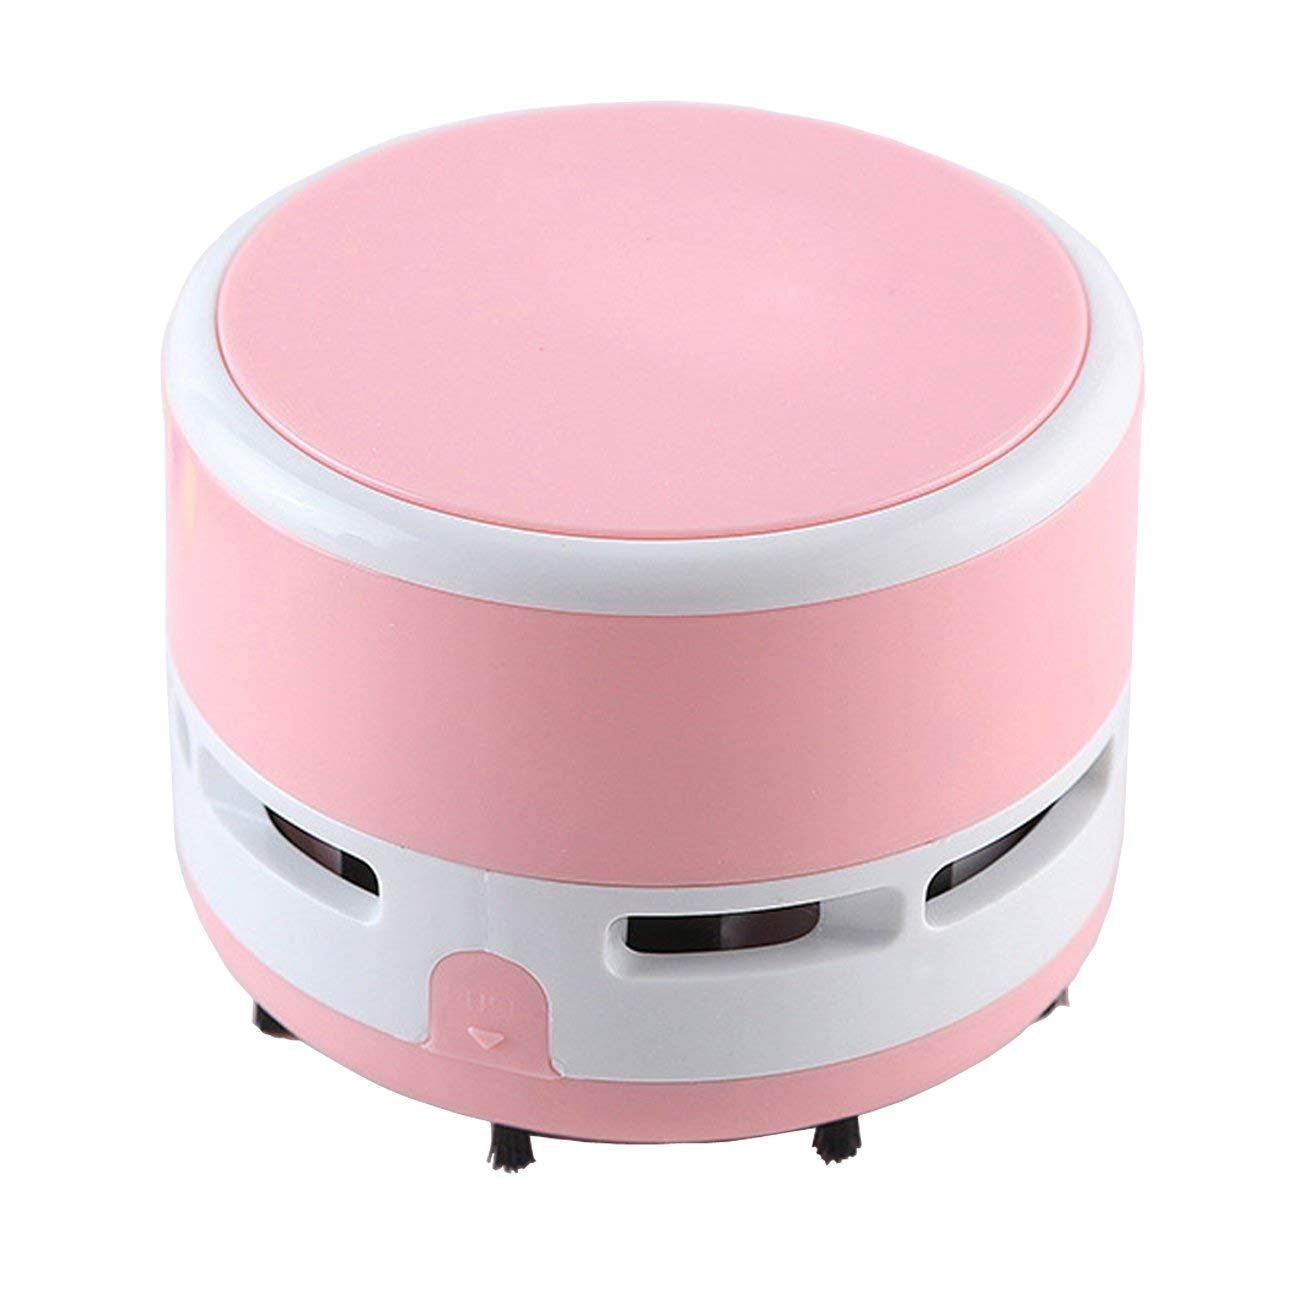 PRINTEMPS Portable Mini Desktop Vacuum Cleaner Handheld Cleaning Assistance Office, Home, Keyboard (Pink)